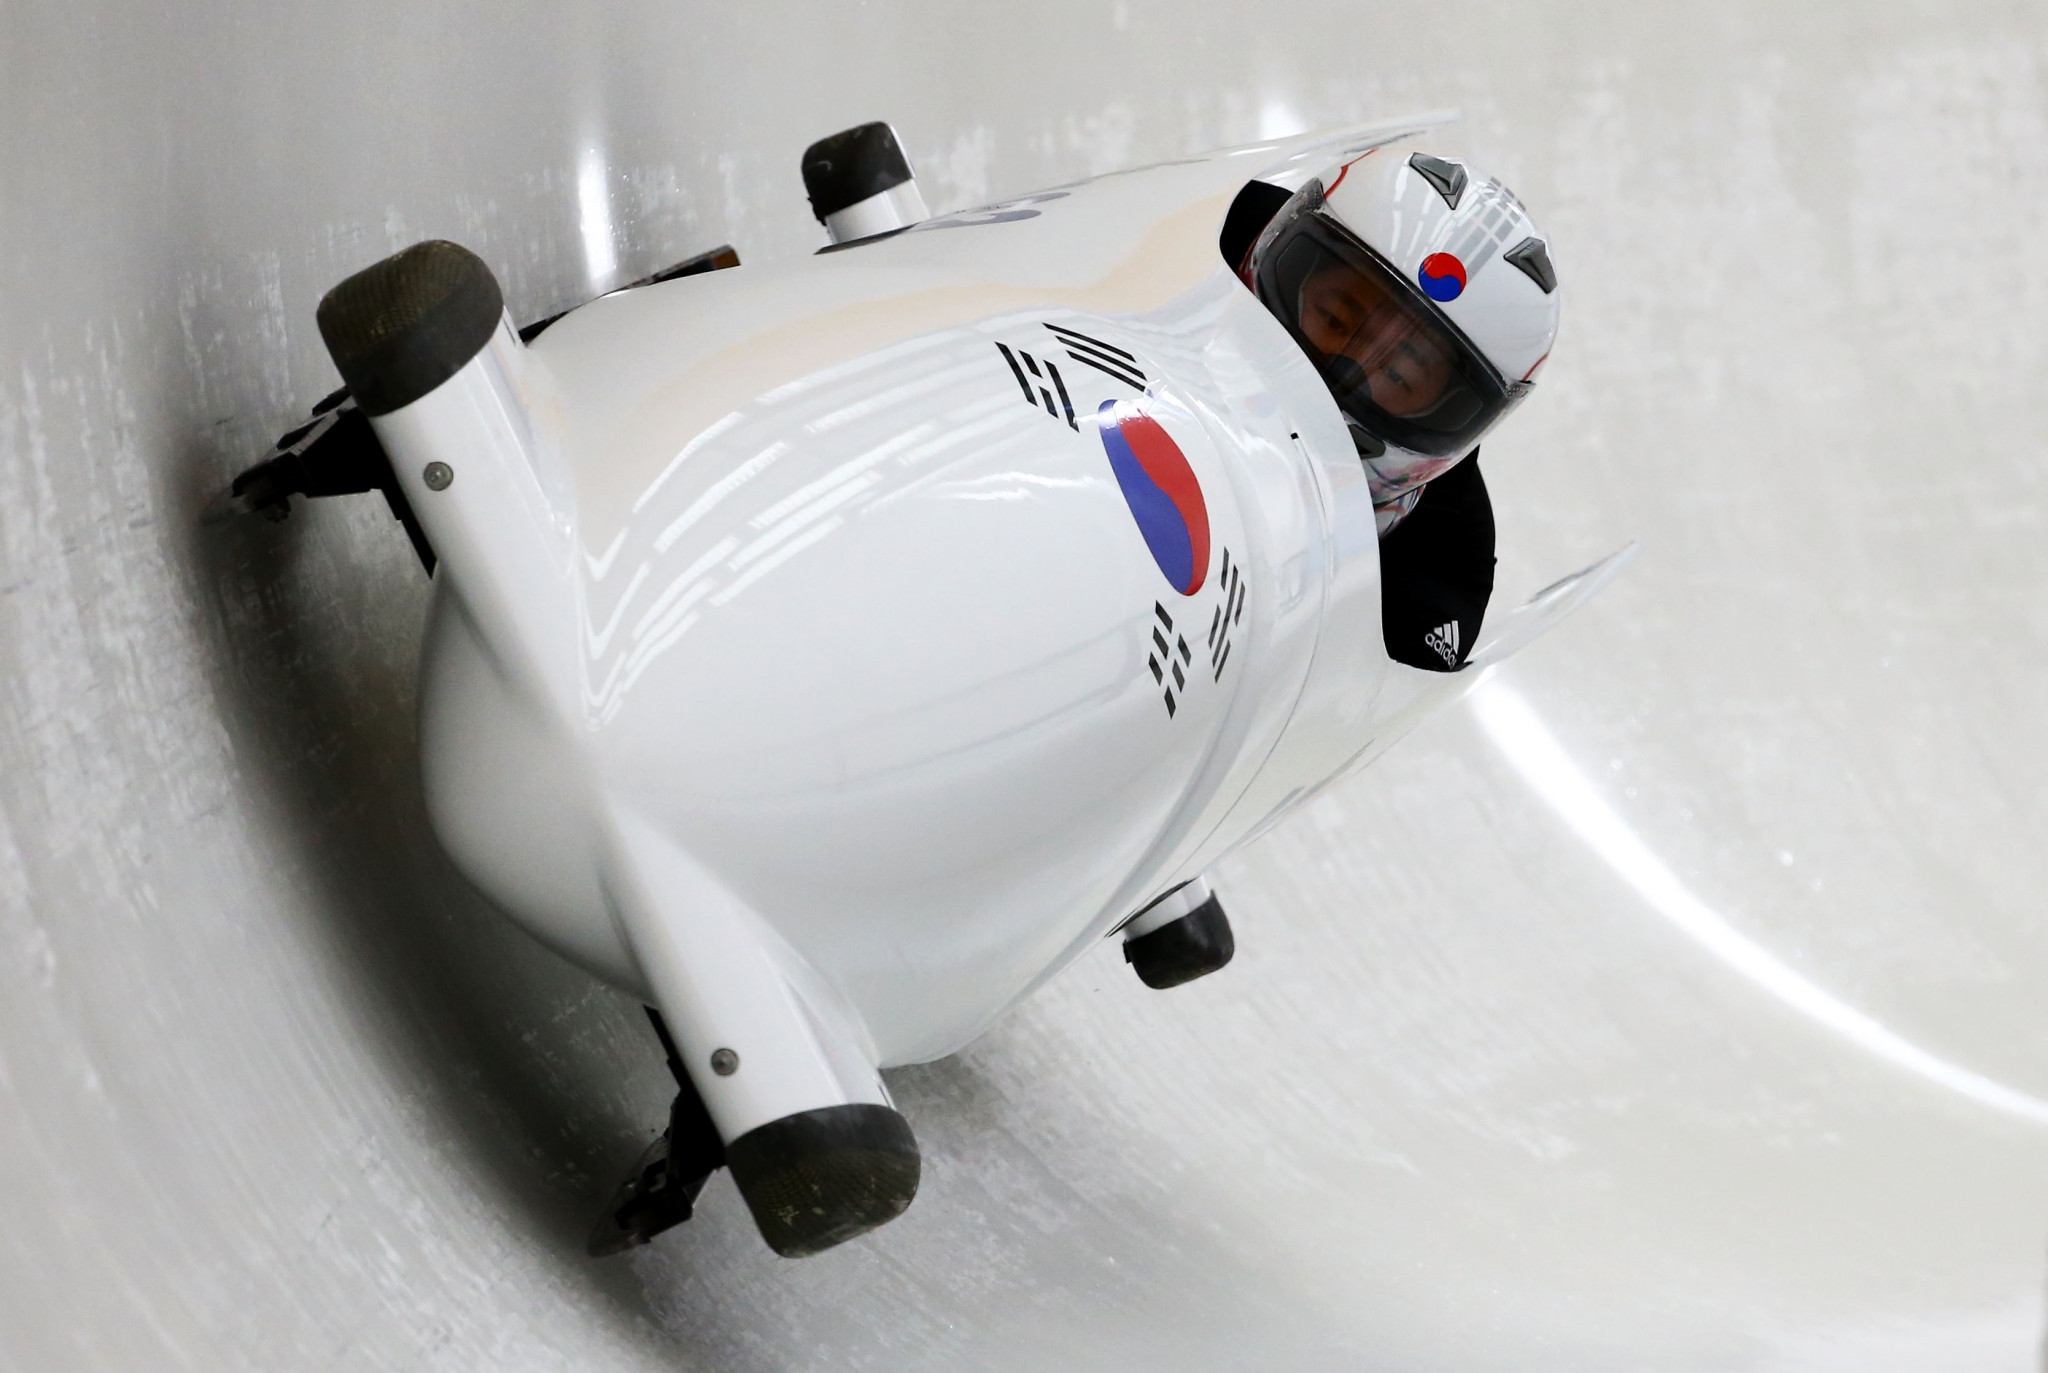 North Korea and South Korea could share a four-man sled to test conditions before bobsleigh competition starts at the Pyeongchang 2018 Winter Olympic Games ©Getty Images